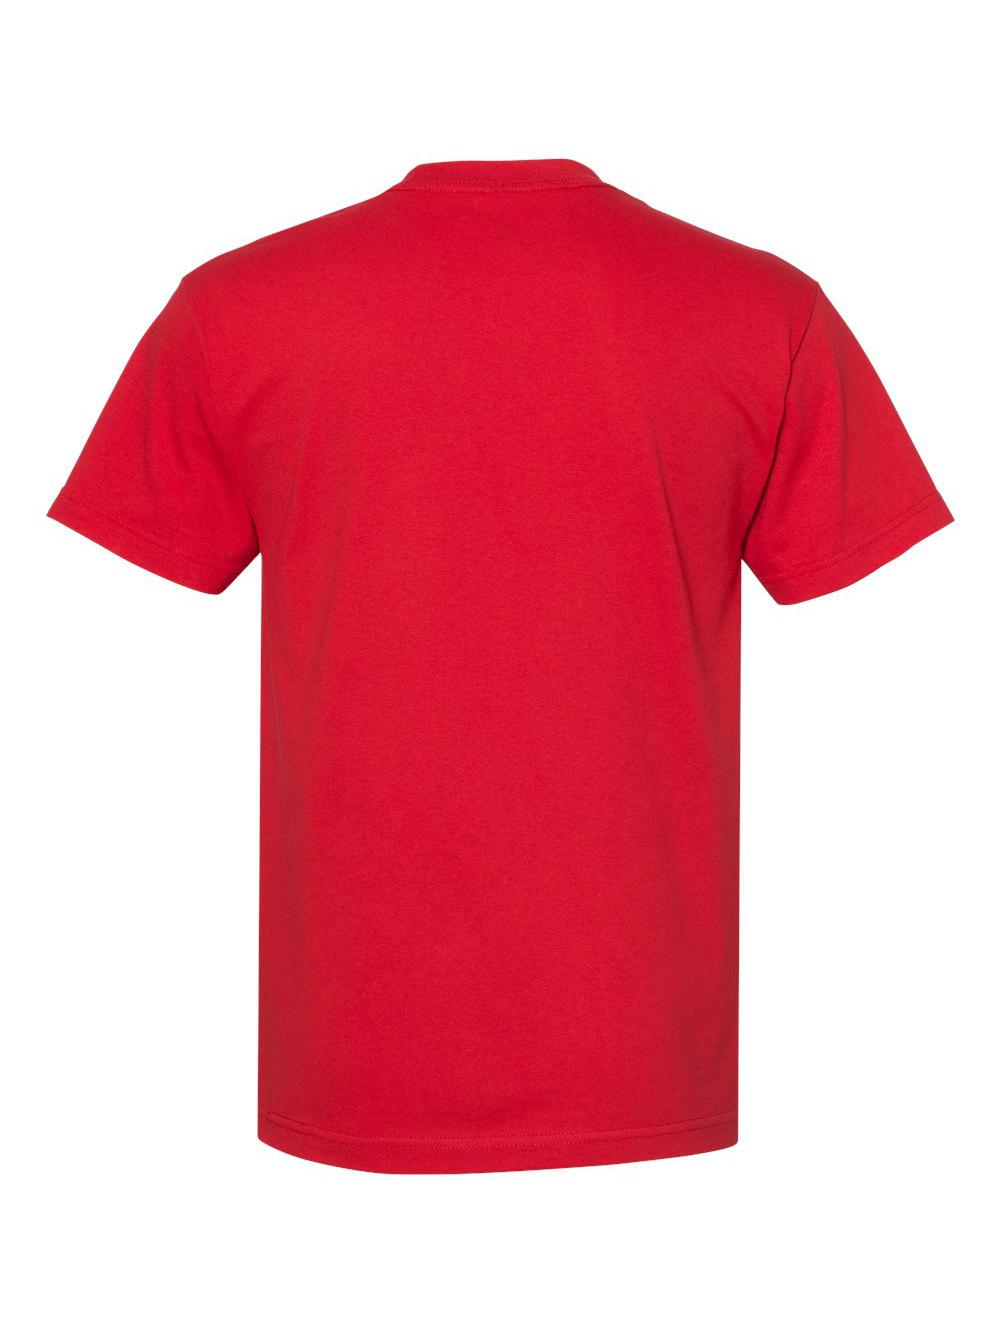 ALSTYLE-Classic-T-Shirt-1301 thumbnail 66